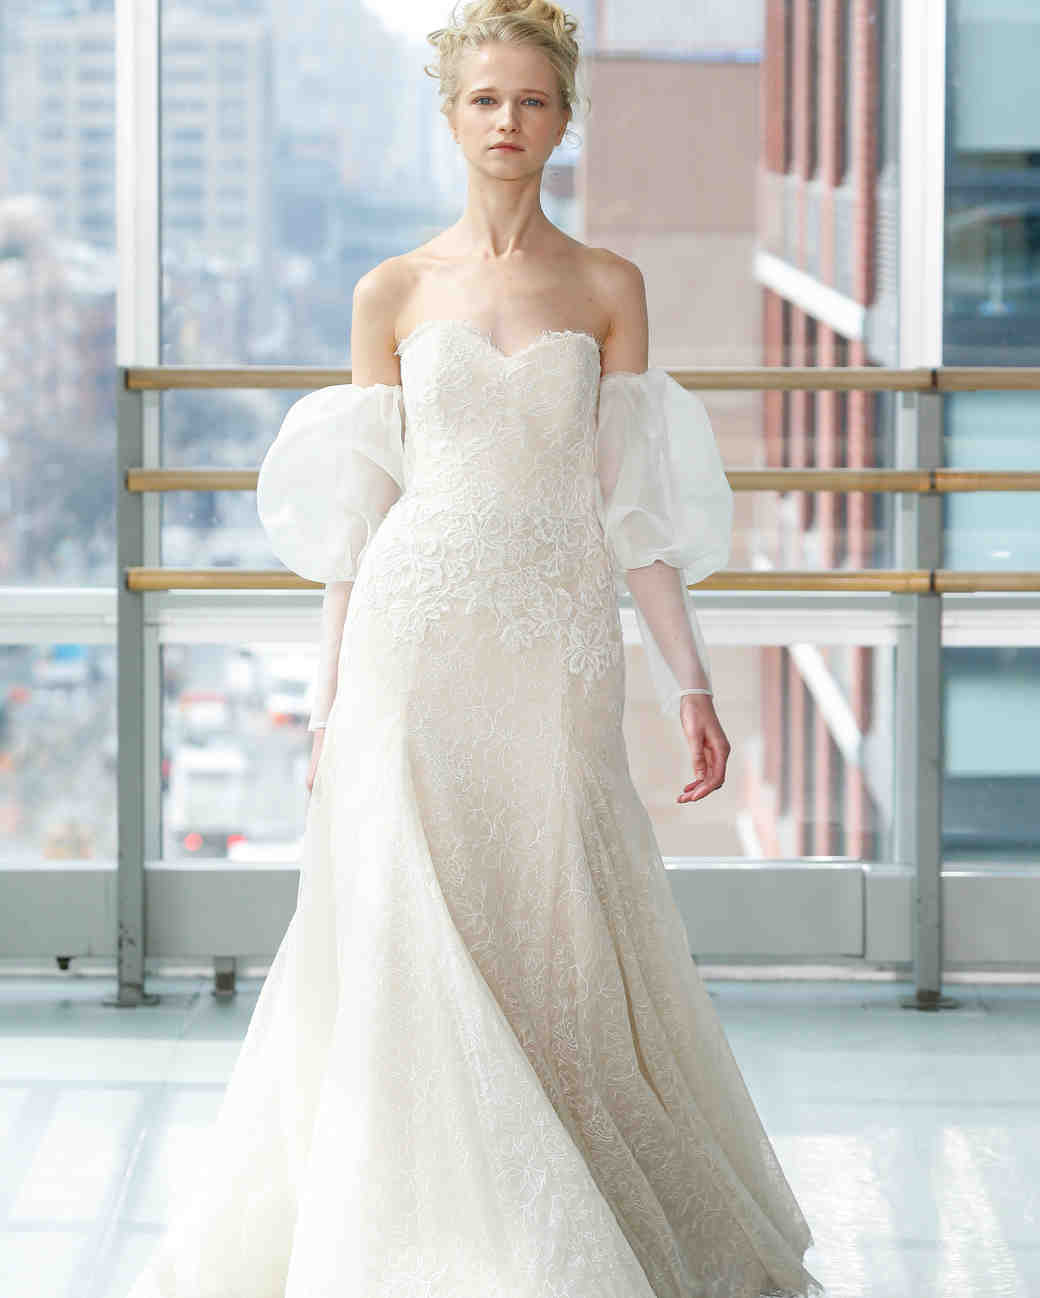 gracy accad wedding dress spring 2019 off the shoulder a-line sweat heart lace